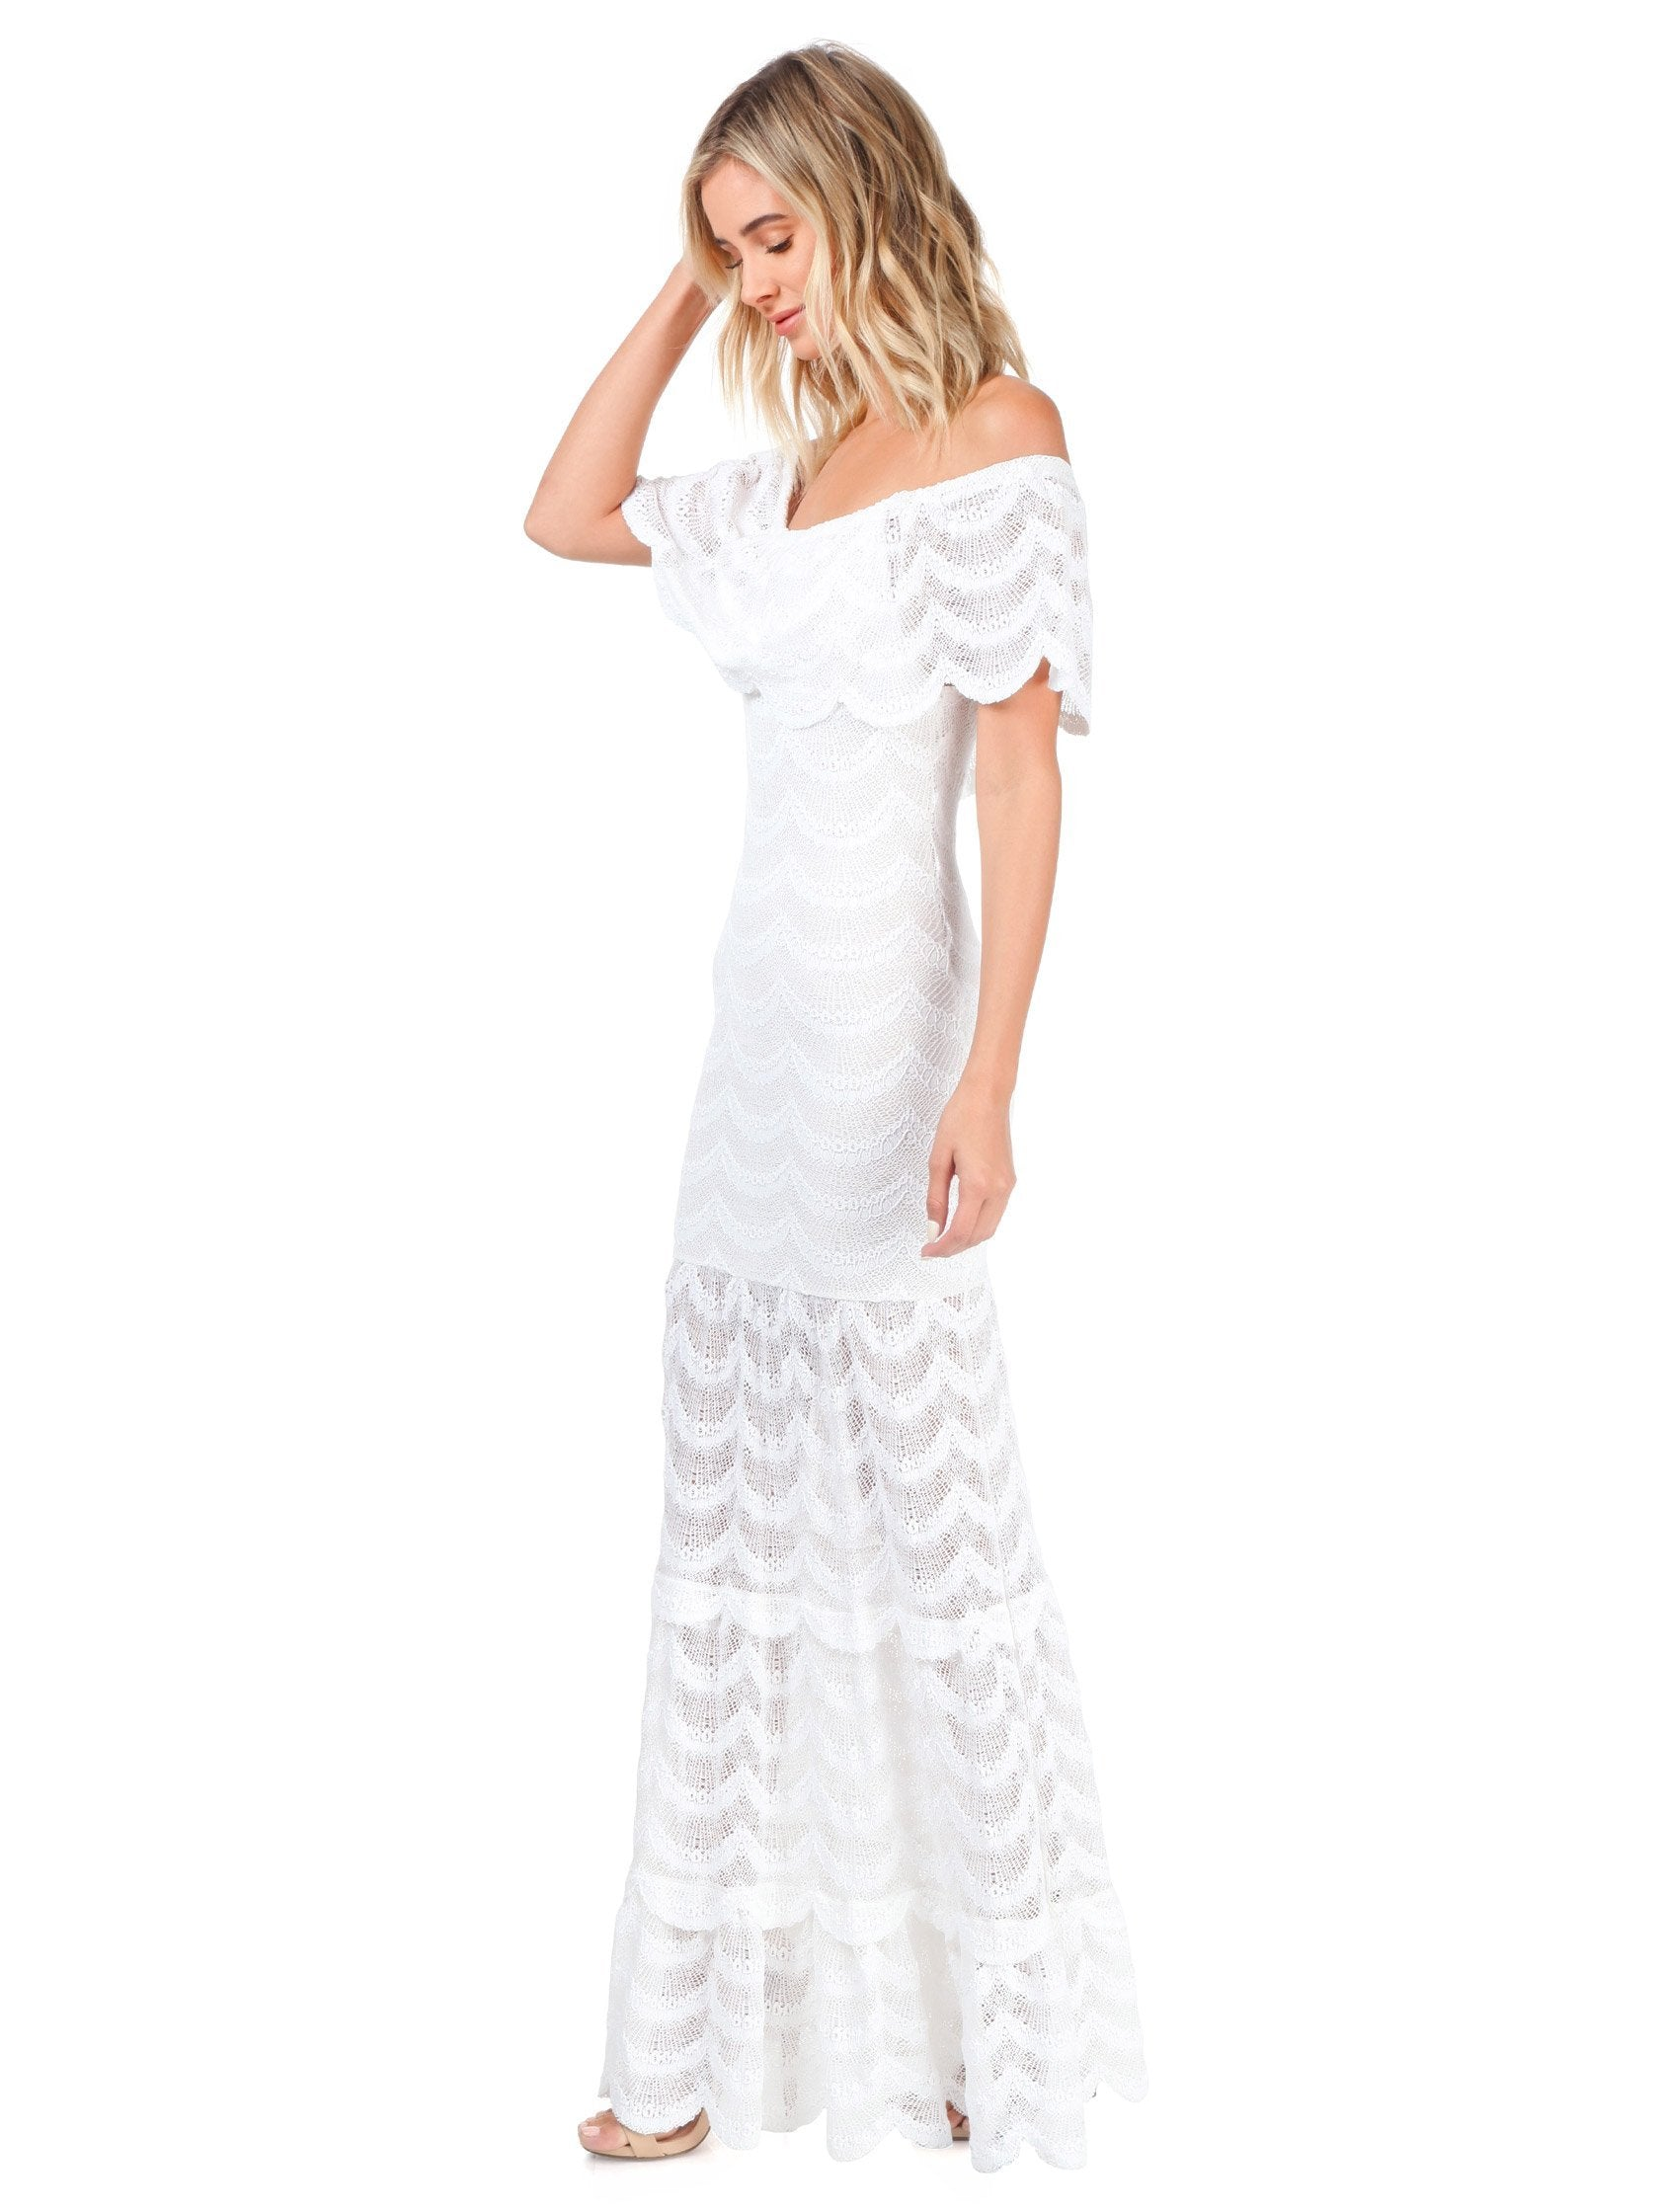 Women outfit in a dress rental from Nightcap Clothing called Fiesta Fan Lace Positano Maxi